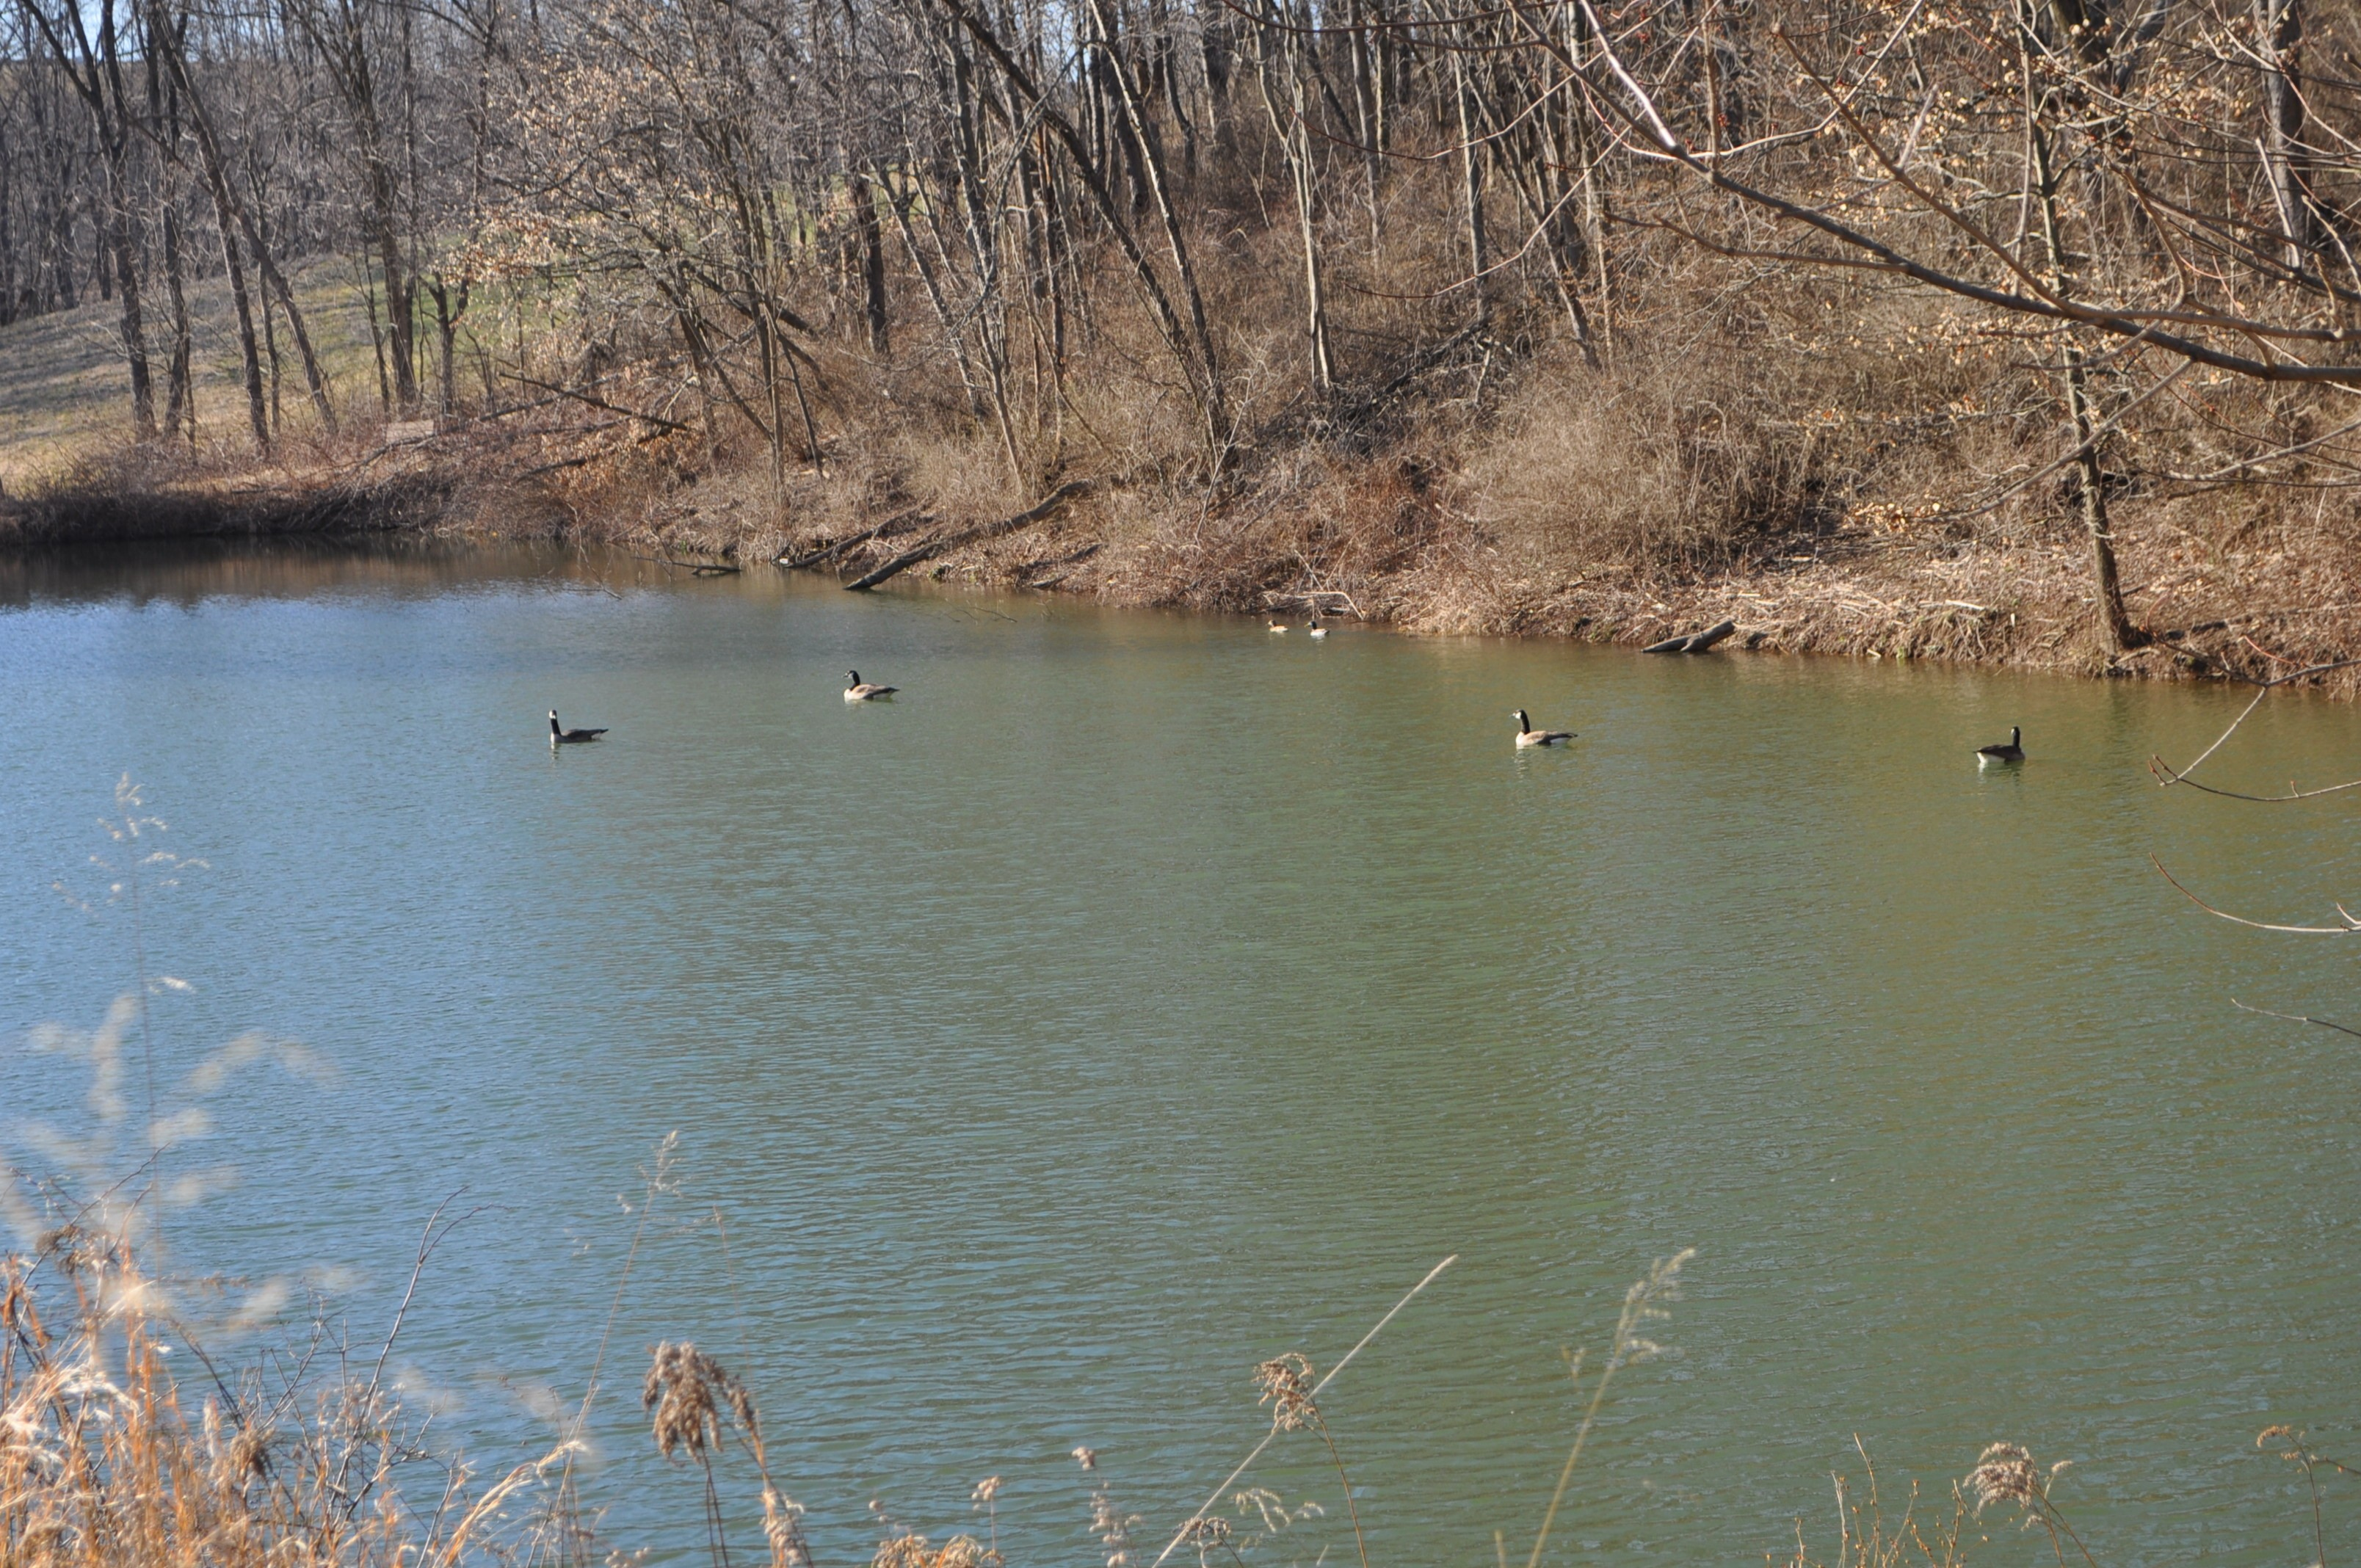 Quacks at the pond